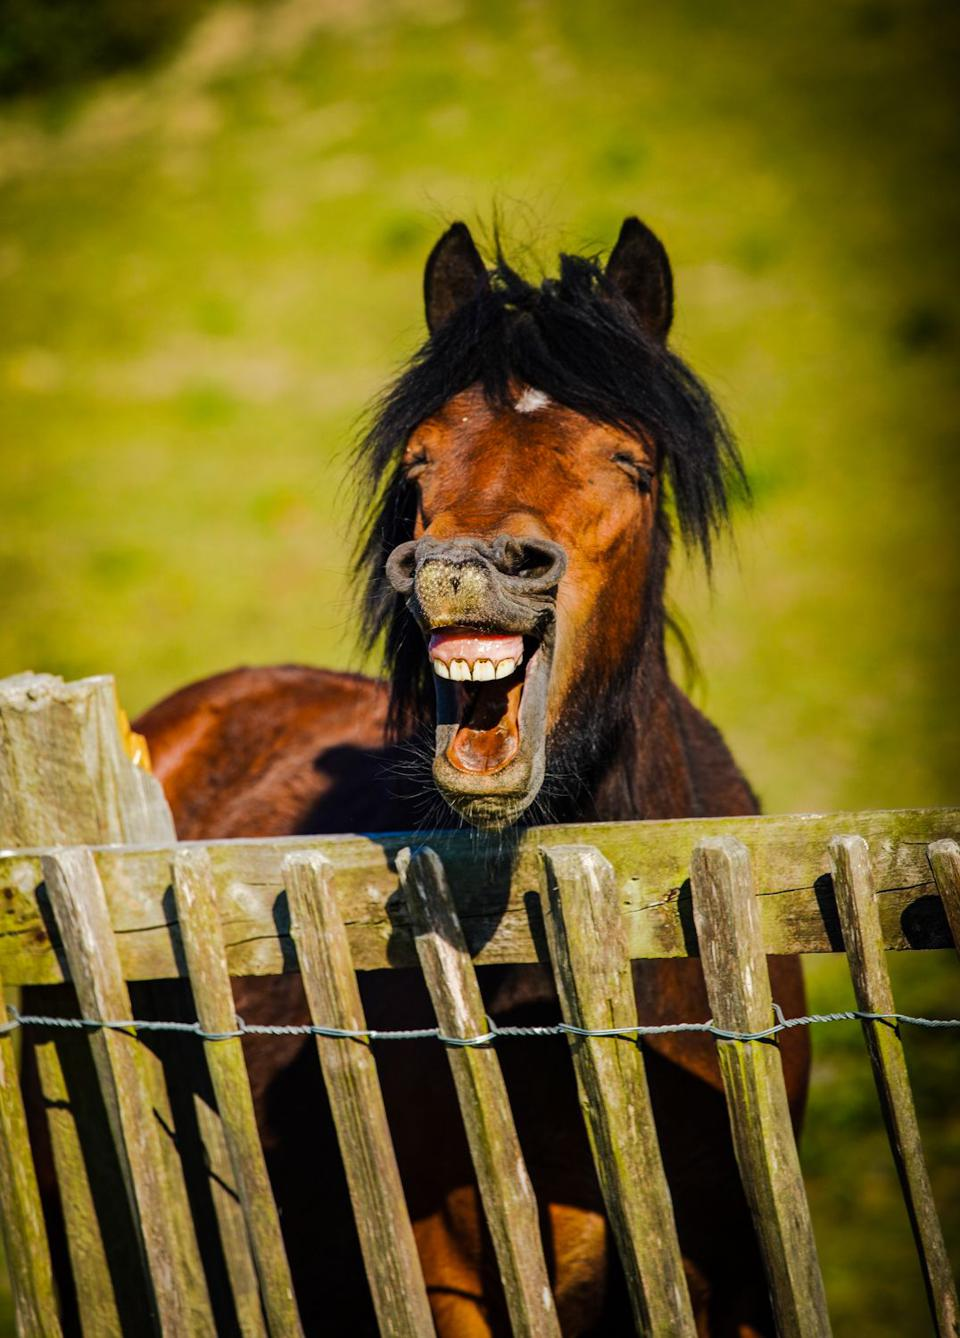 A horse showing its teeth in an equine smile